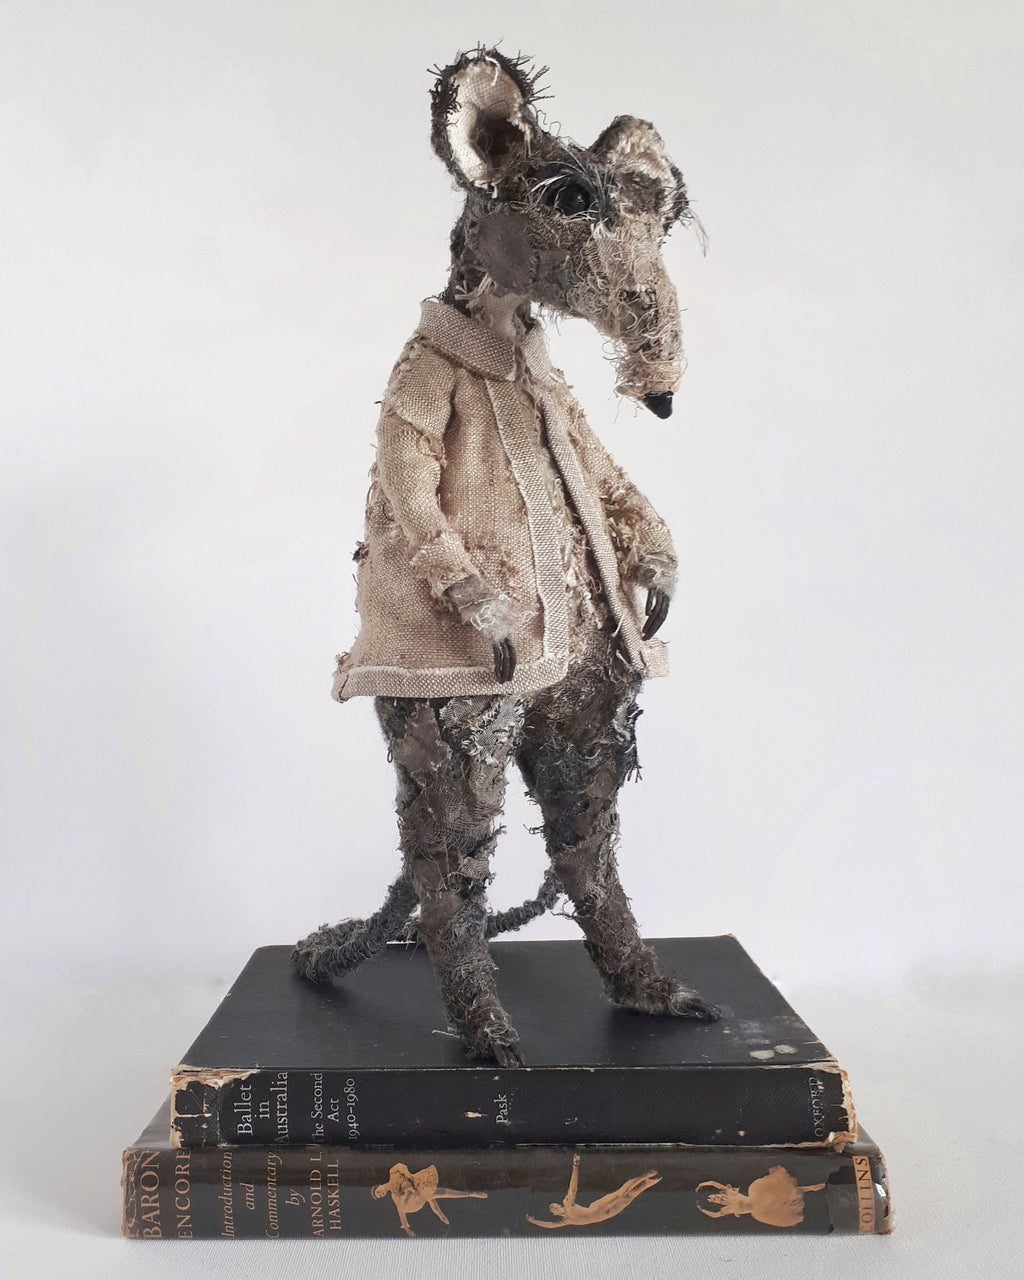 Rat textile sculpture created from vintage and antique textiles